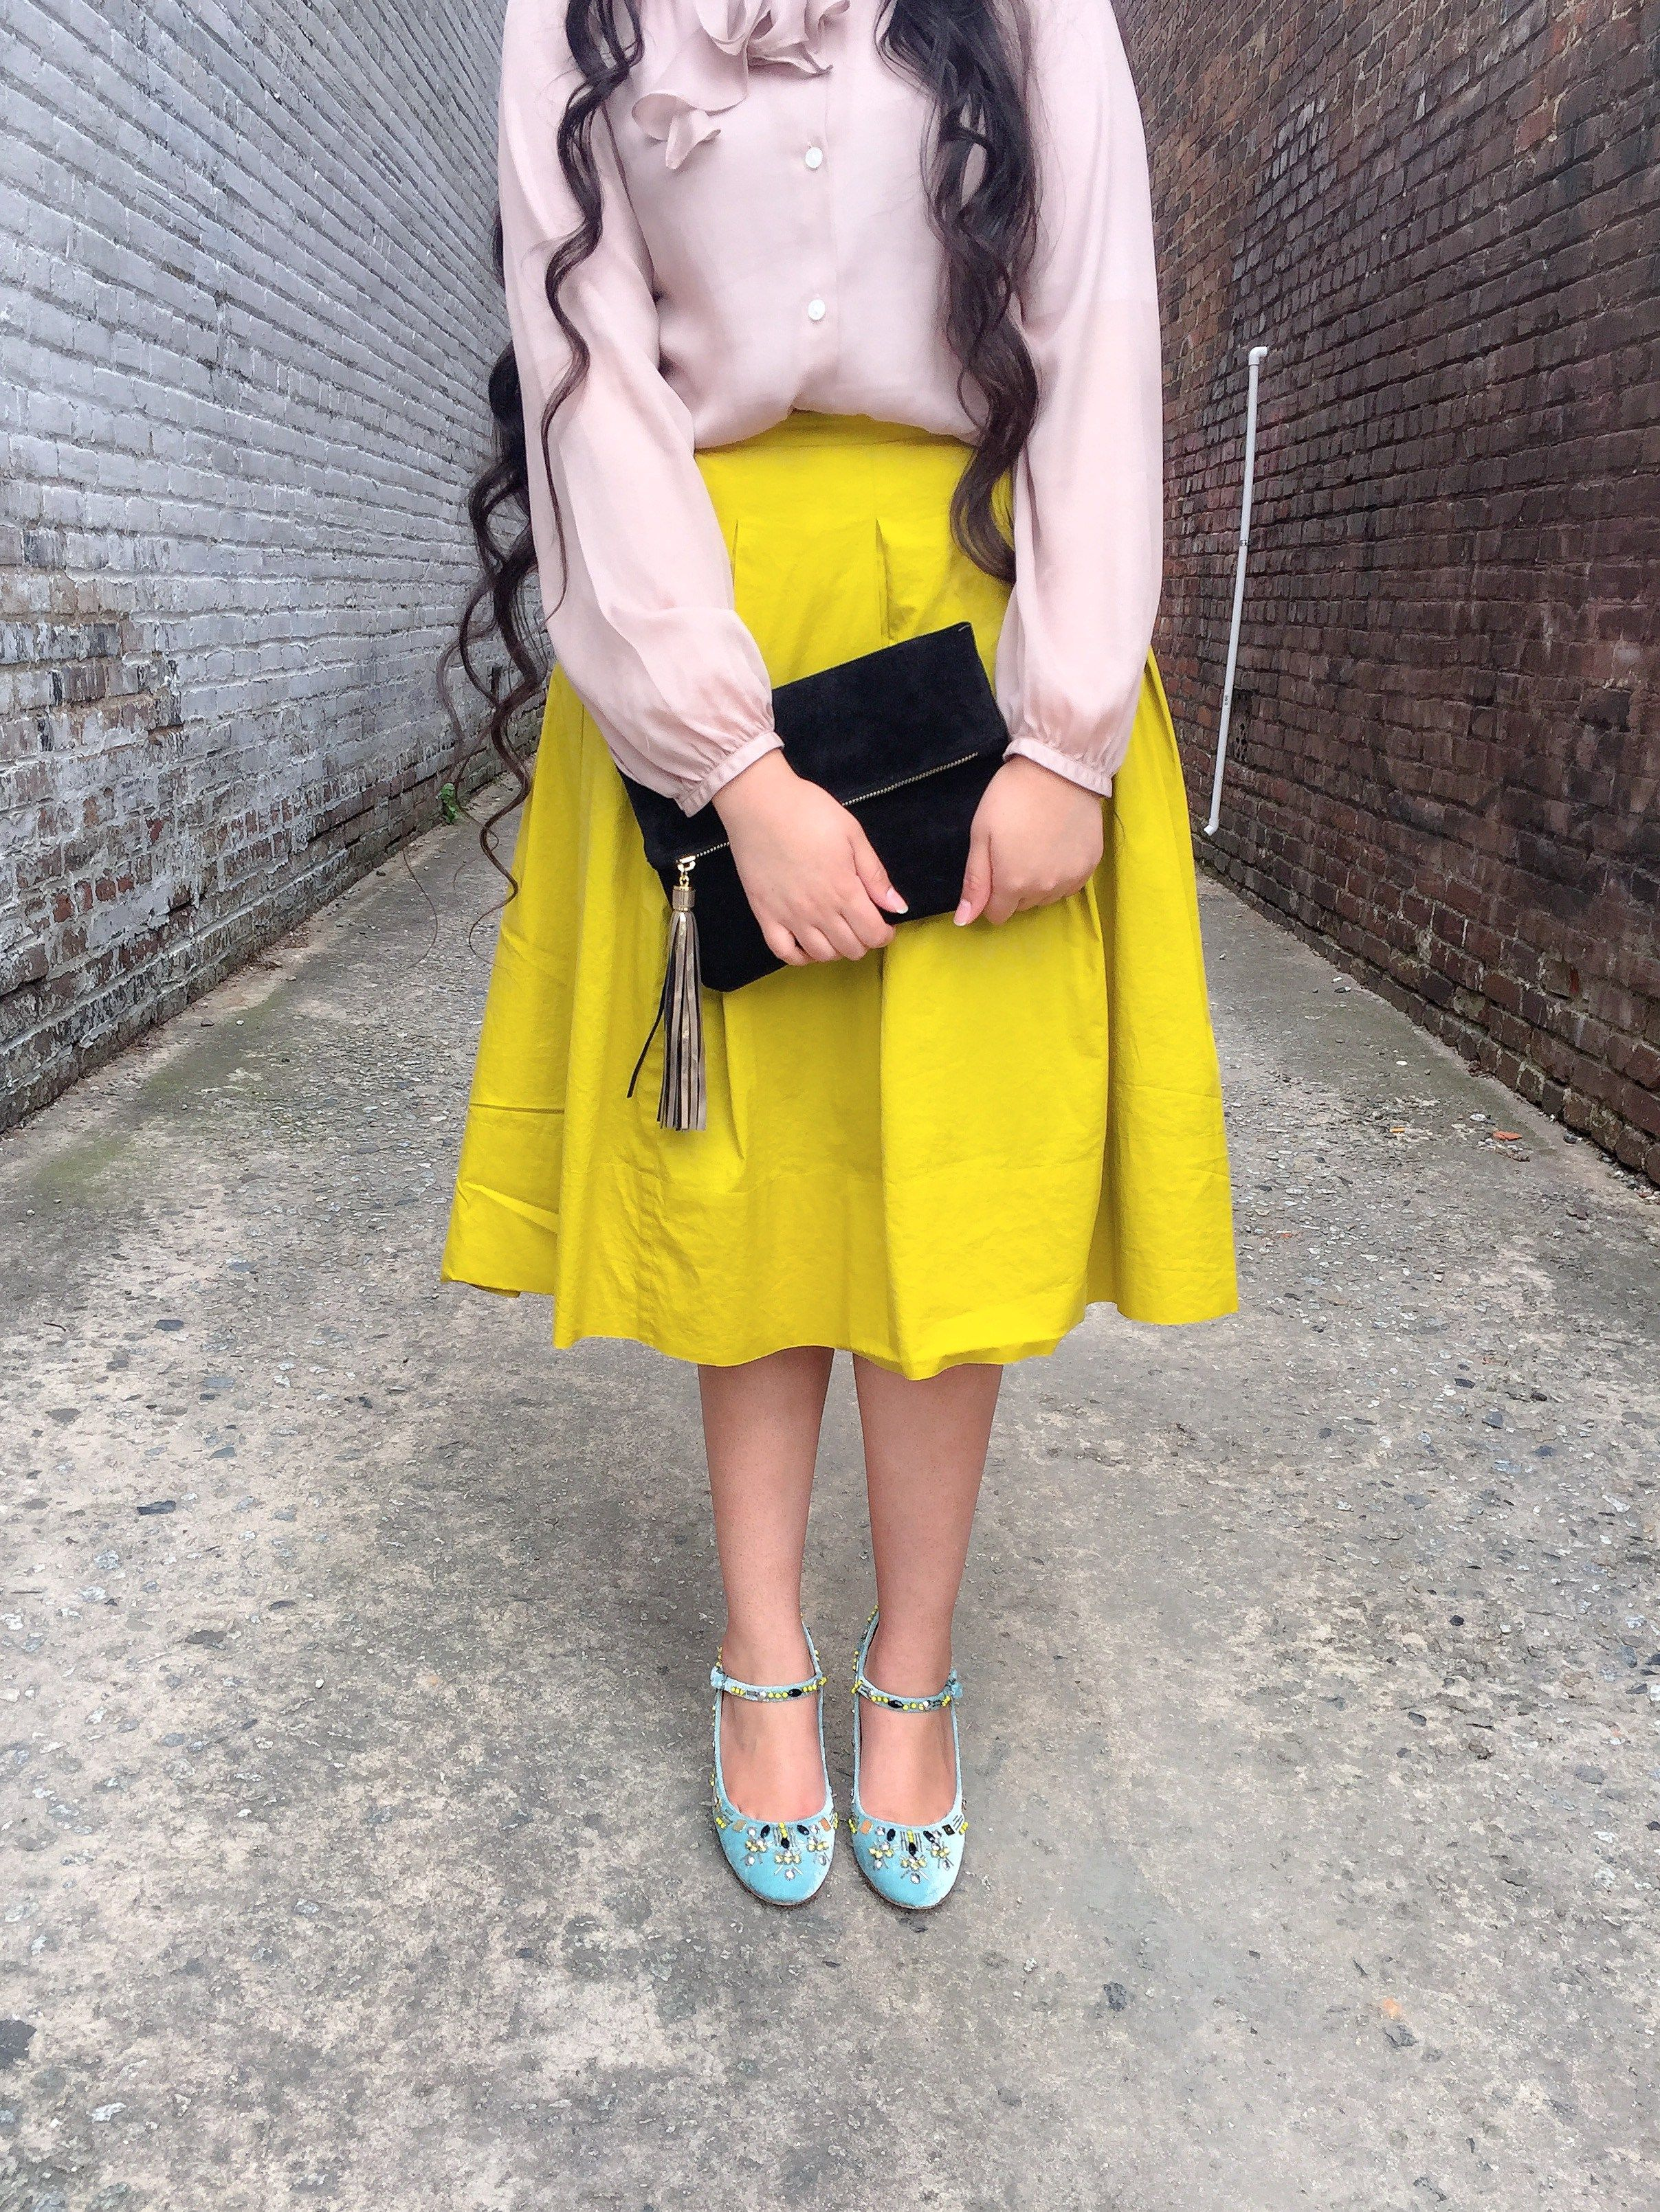 The Colors of Spring | Fun & Modest Outfit Inspo by @kimberdulsi on @shesintentional